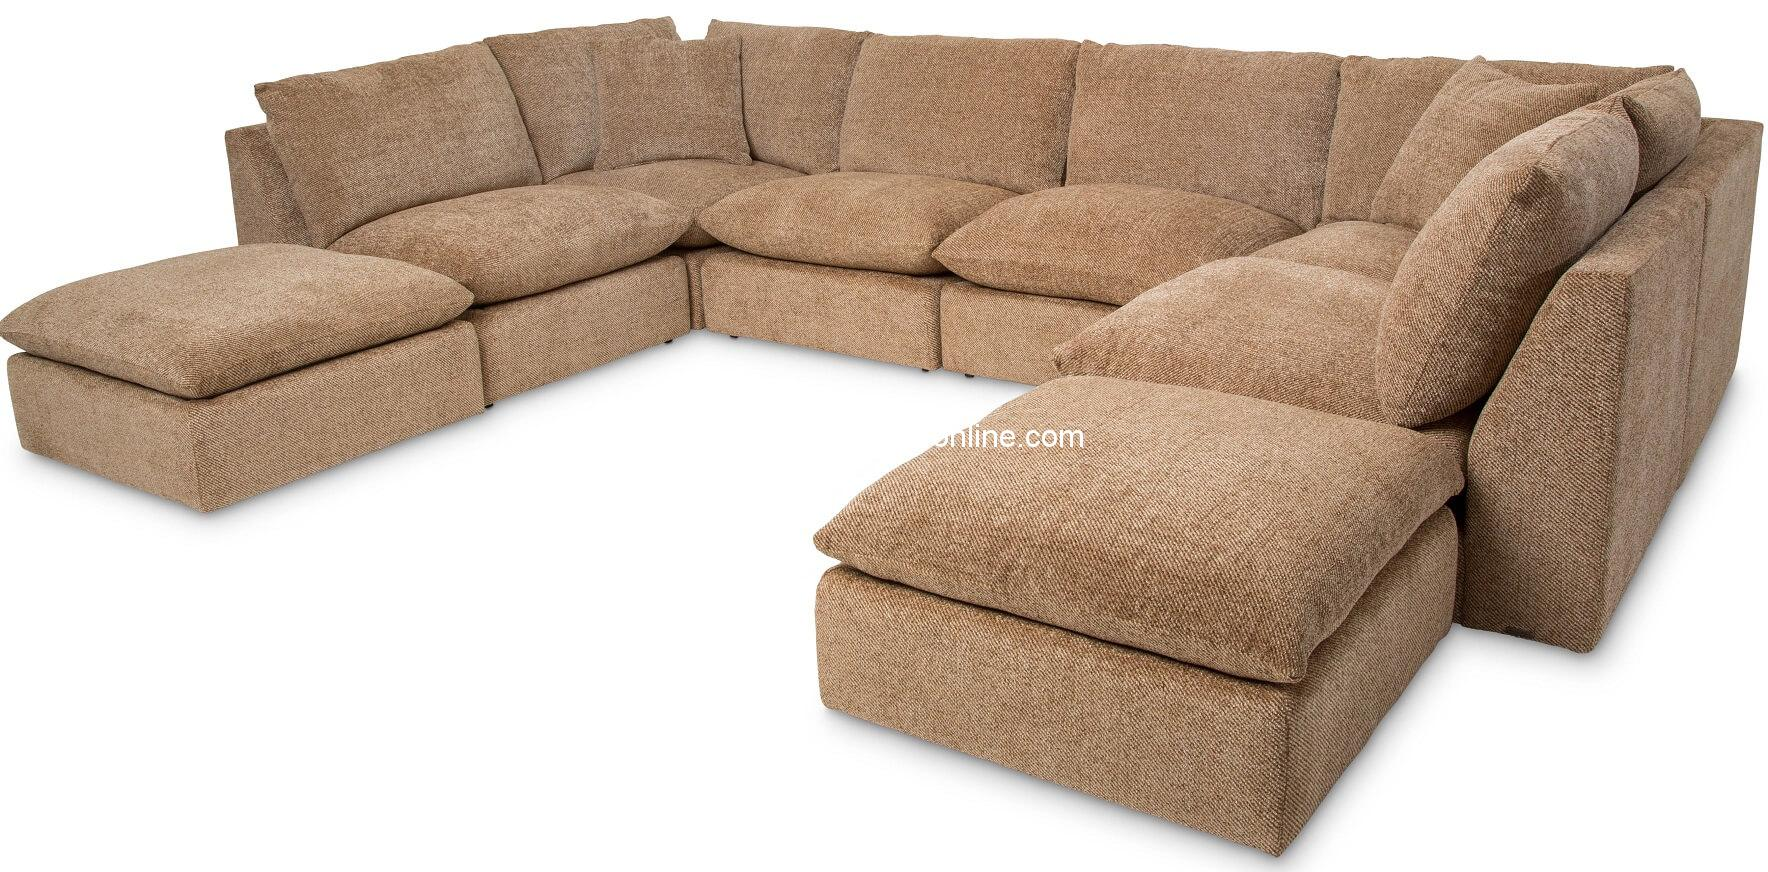 Remarkable Studio Space Marily 8 Piece Sectional Set Alphanode Cool Chair Designs And Ideas Alphanodeonline